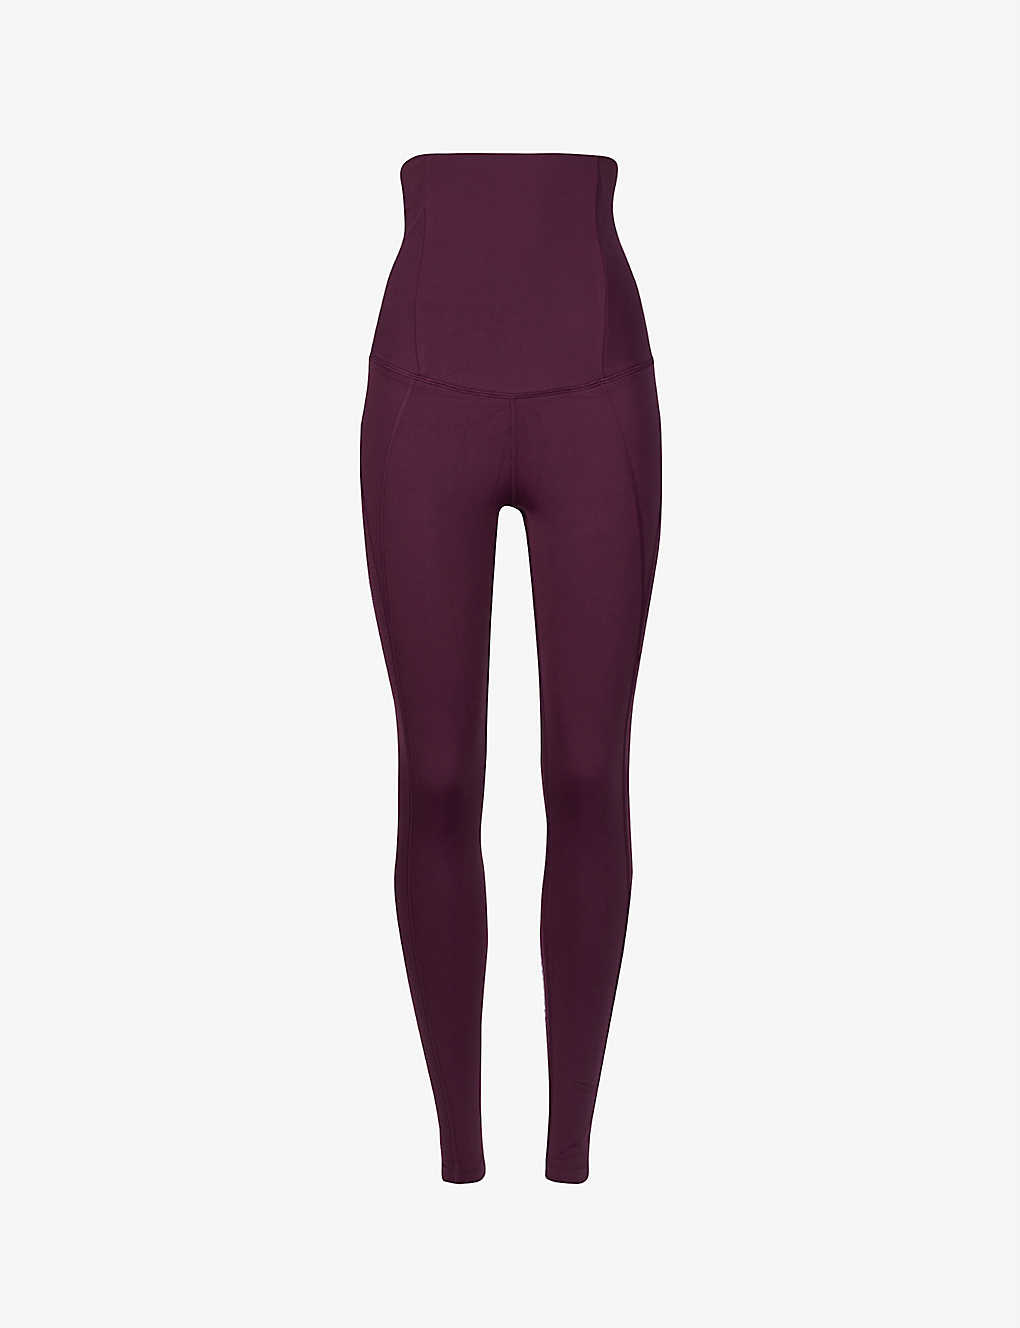 GIRLFRIEND COLLECTIVE: Super high-rise stretch-recycled polyester maternity leggings